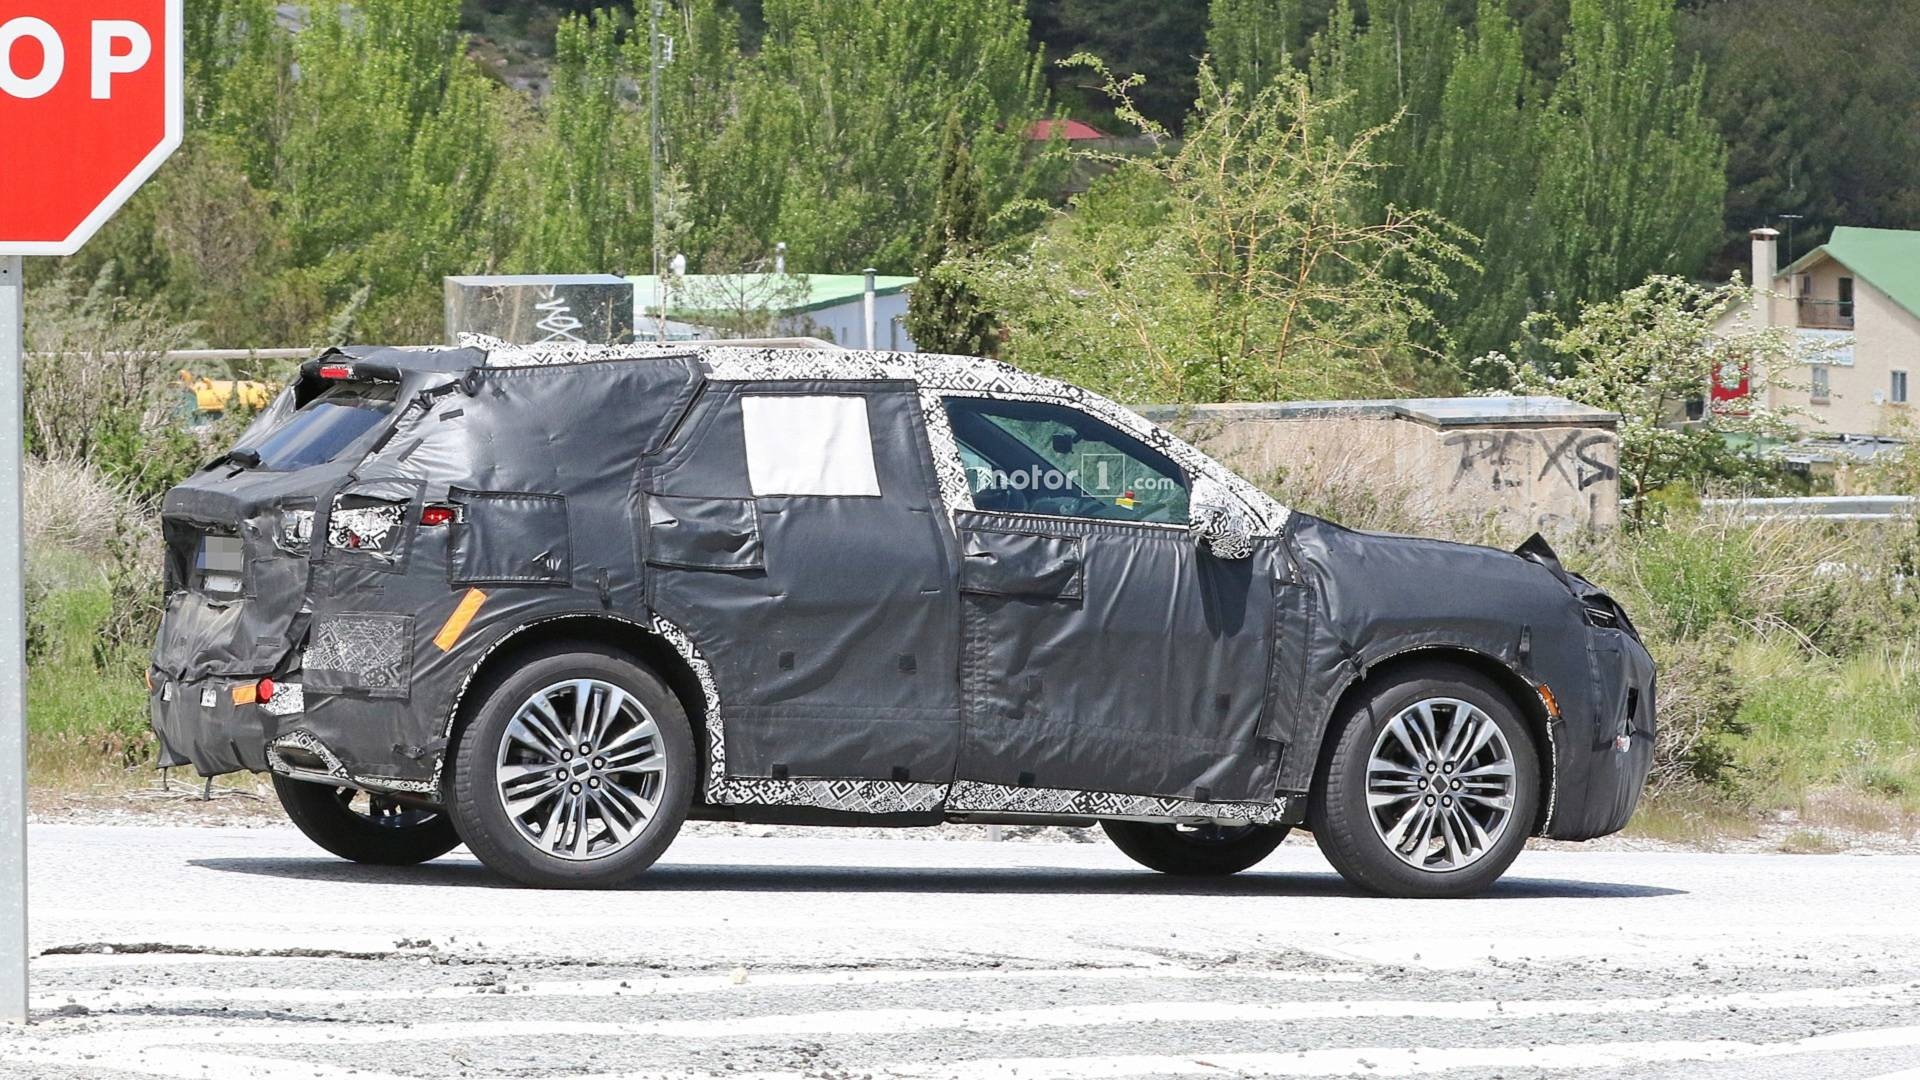 New Chevy Blazer Spied With Production Cues